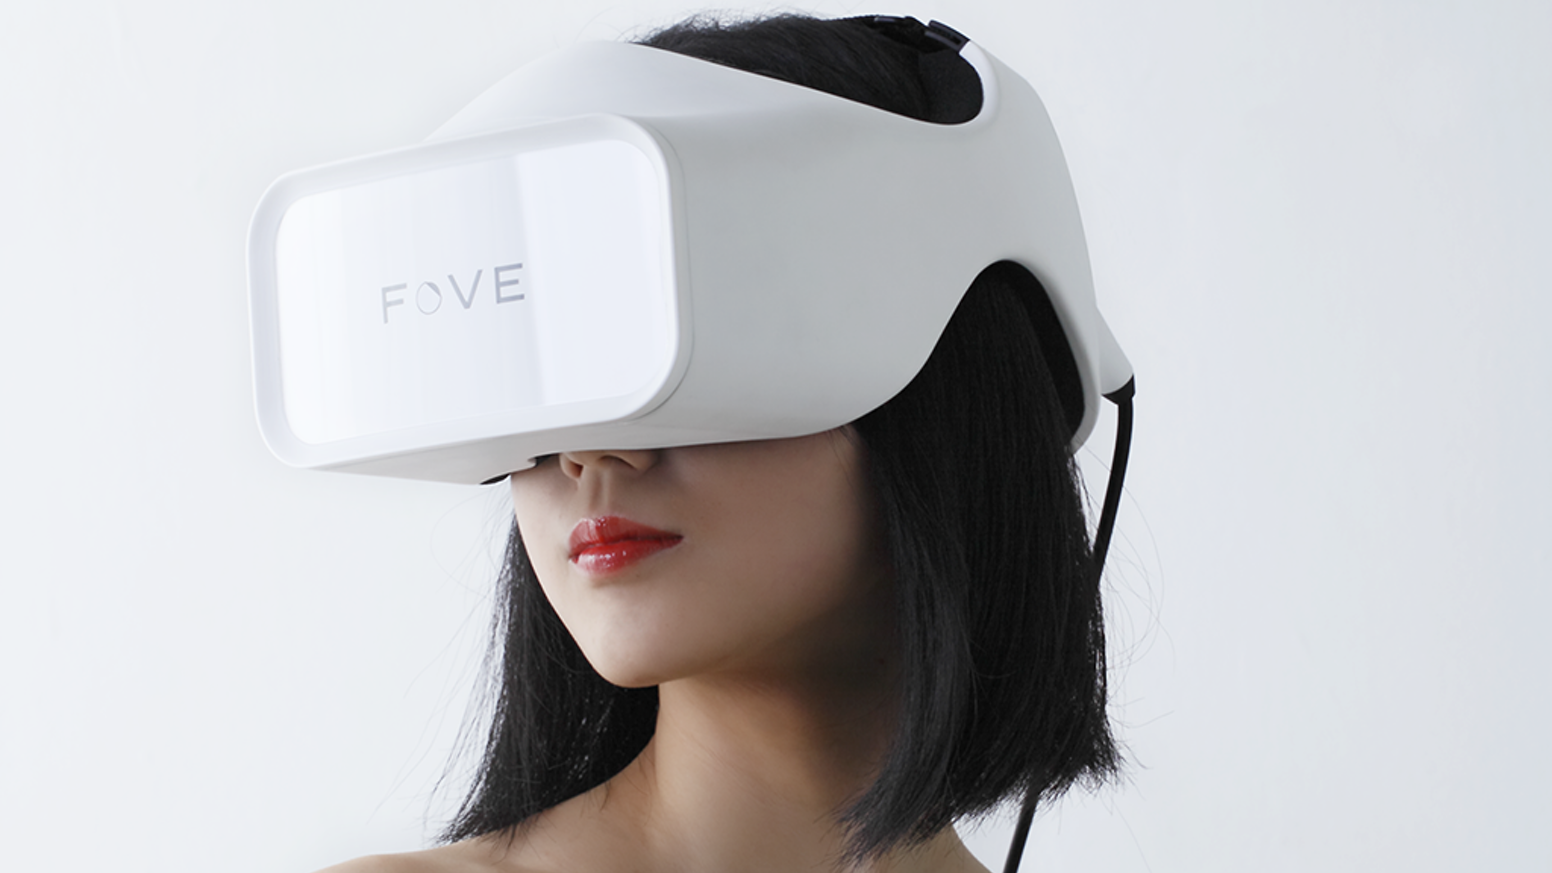 Human connection in a virtual world: FOVE reads subtle eye movements for more precise control in VR. Missed the FOVE campaign? Head over to GetFOVE.com to get yours! Thanks to all of our Kickstarter backers for making our vision happen!